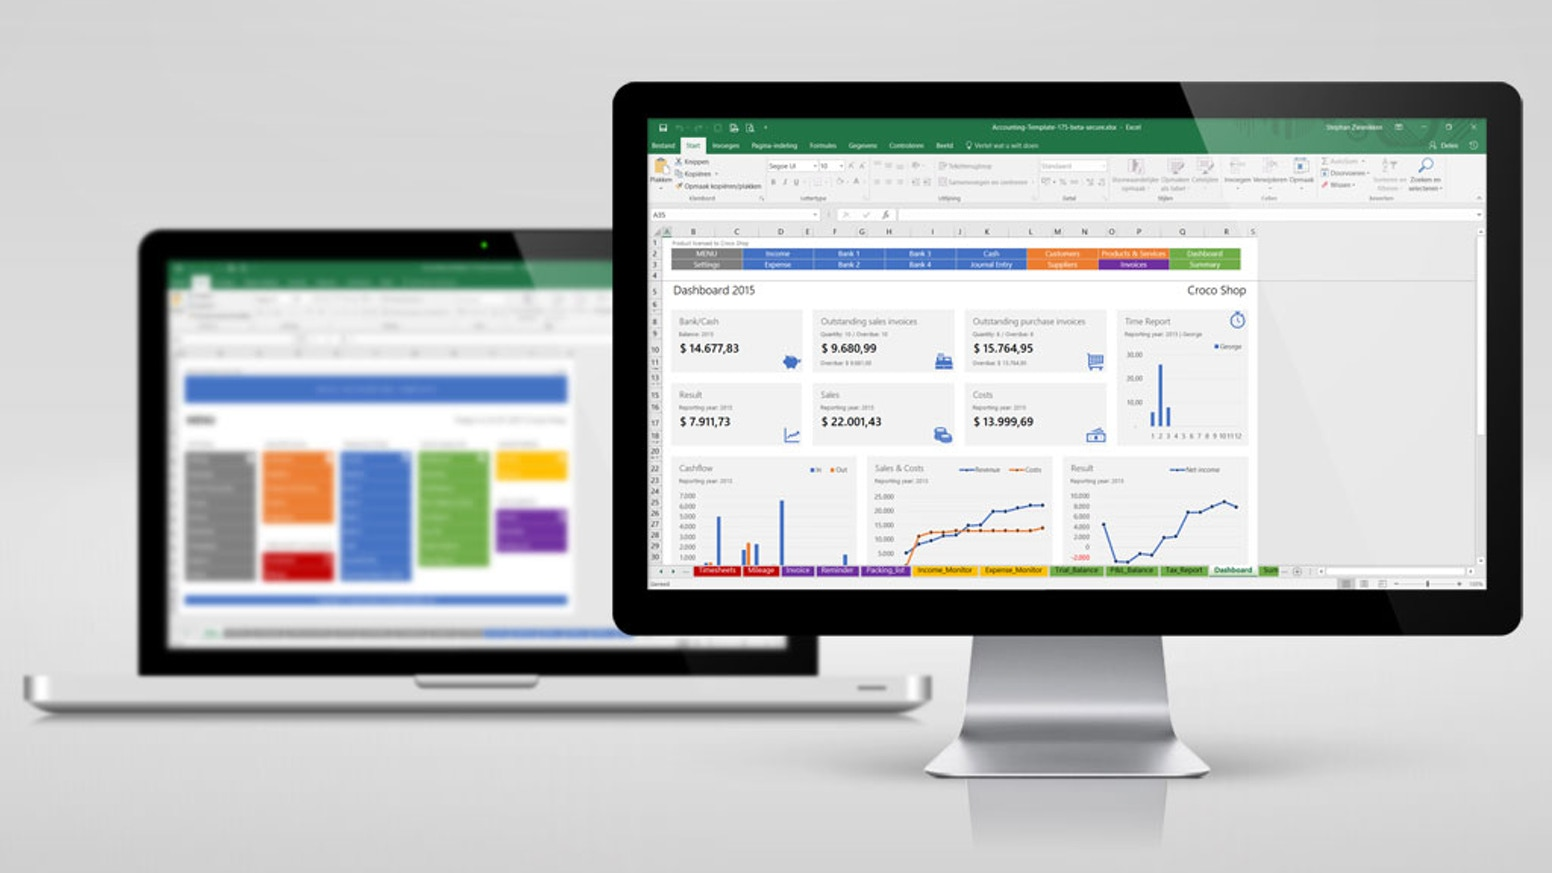 Excel accounting template by stephan zwanikken kickstarter the all in one accounting solution in excel for small business owners cheaphphosting Choice Image